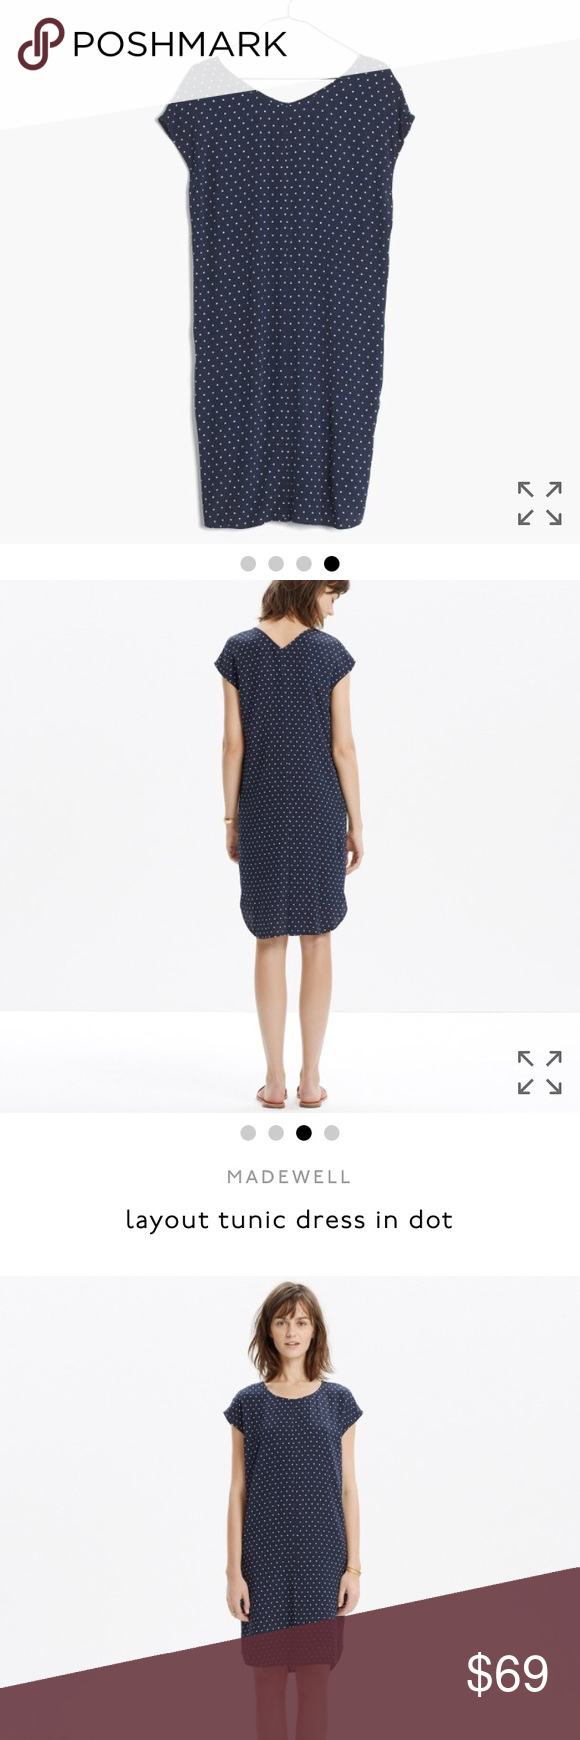 b0e006c9a4a Madewell layout tunic dress in dot Sold out Madewell layout tunic dress in  dot. Navy blue. Polka dot design. Madewell Dresses